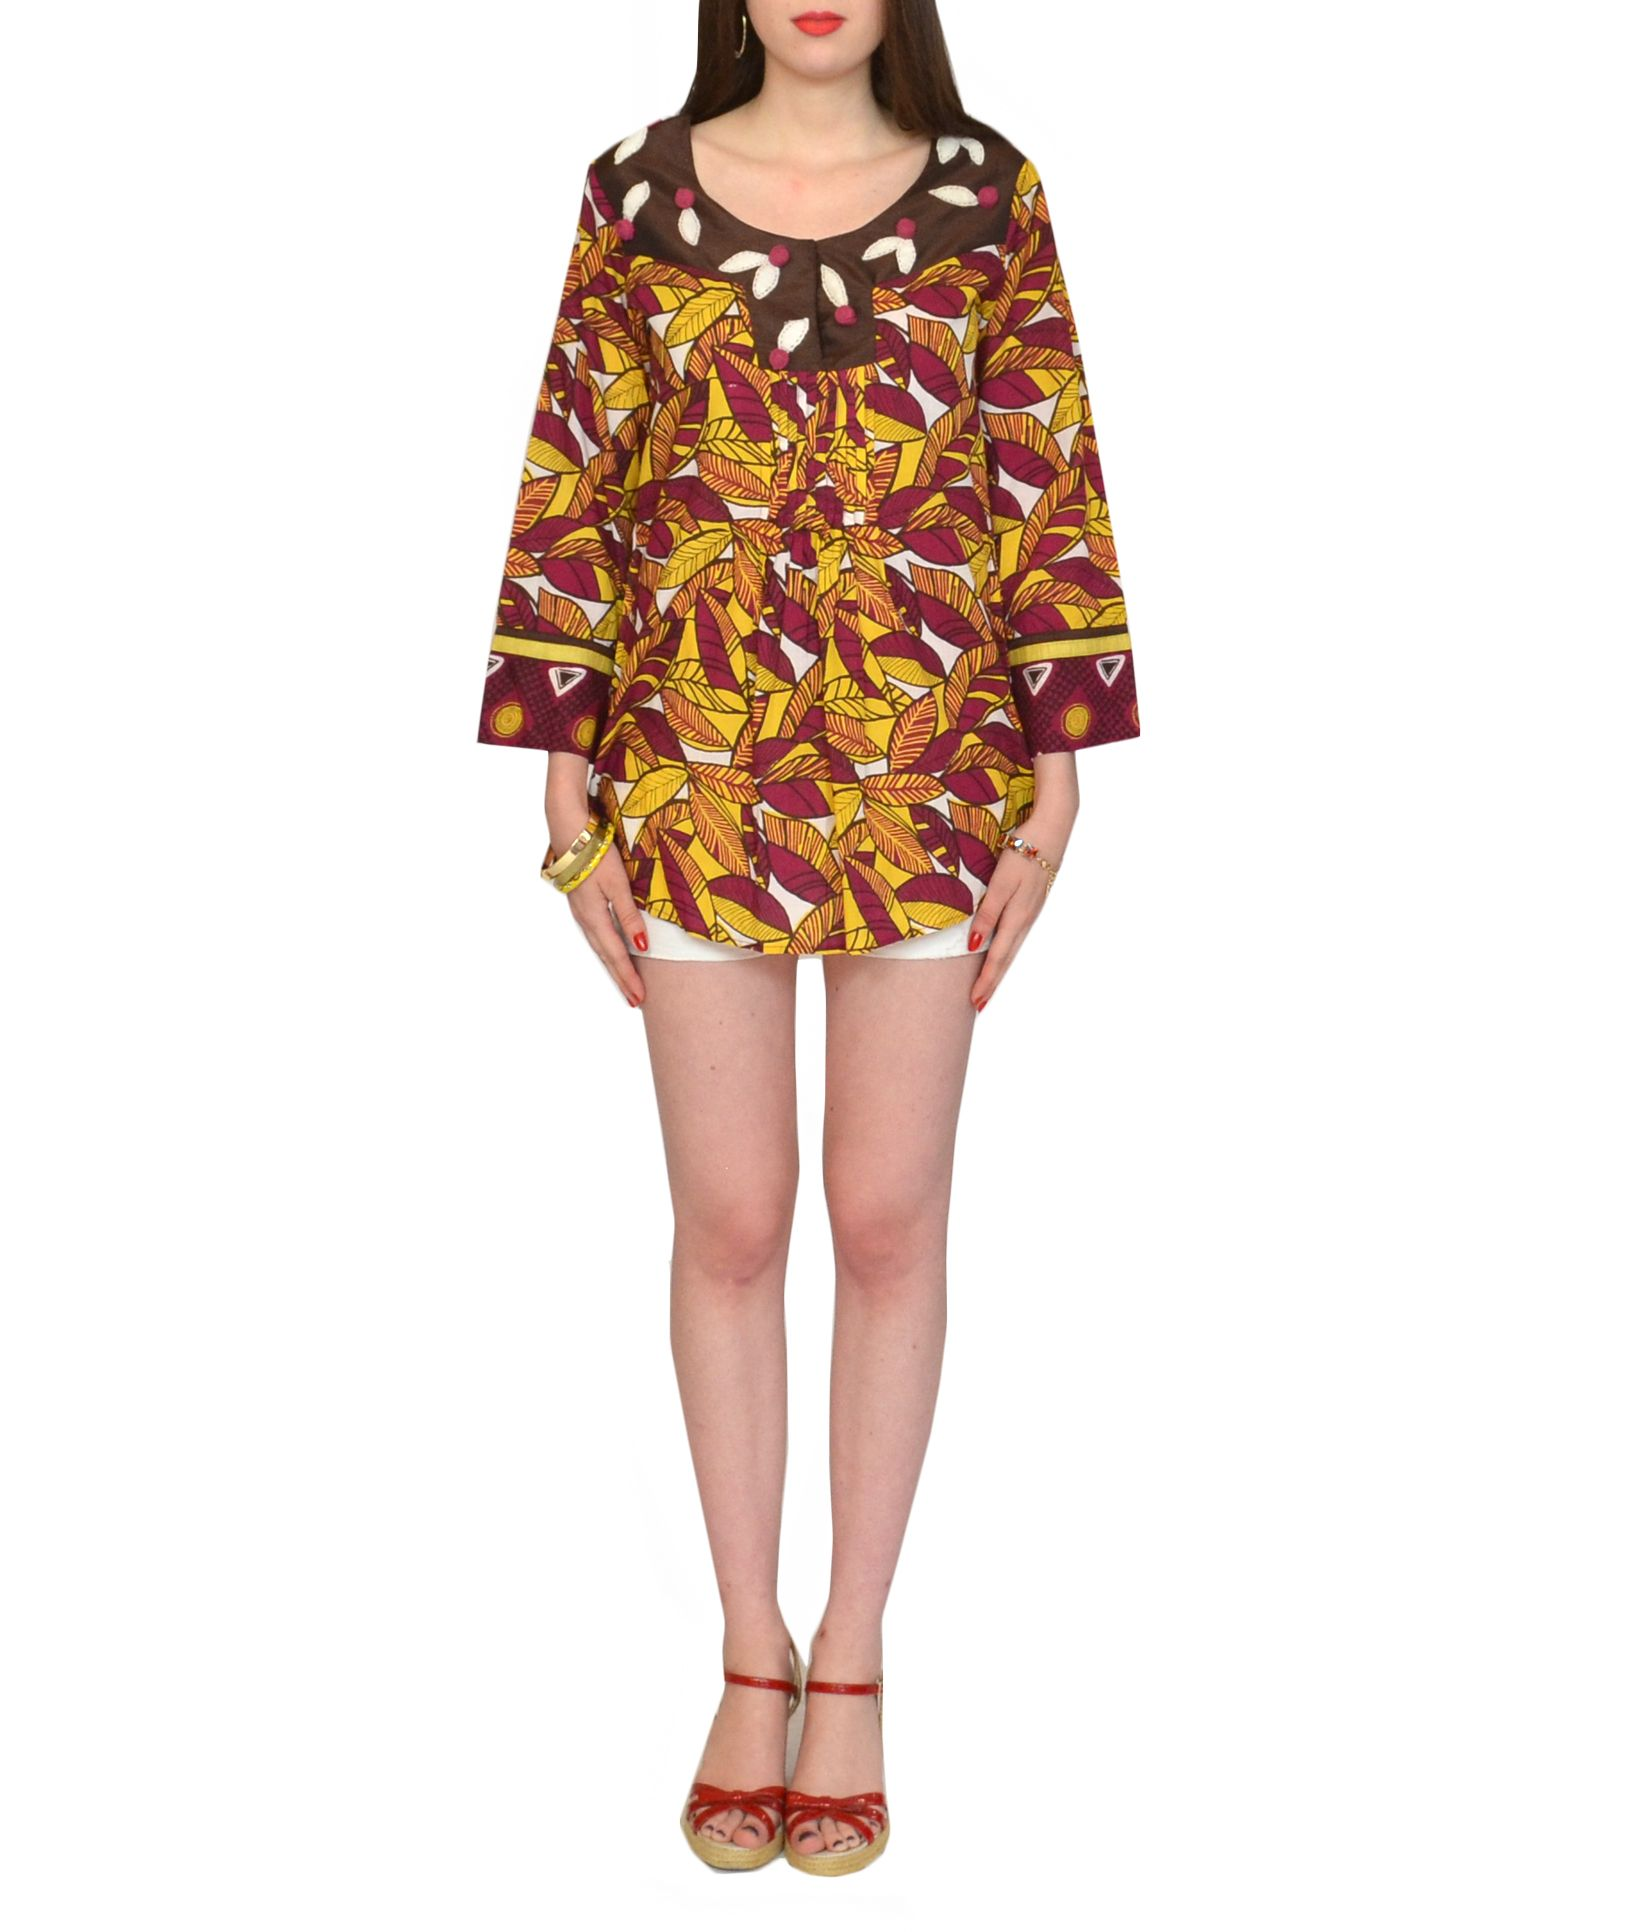 #kasnewyork #lynette #tunic #tropical #print #yellow #purple  Shop the look on KAS New York:http://www.kasnewyork.com/index.php?page=productslist&storeid=89&categoryID=1254&subcatID=&subsubcatID=&prodid=11121&sess=store89